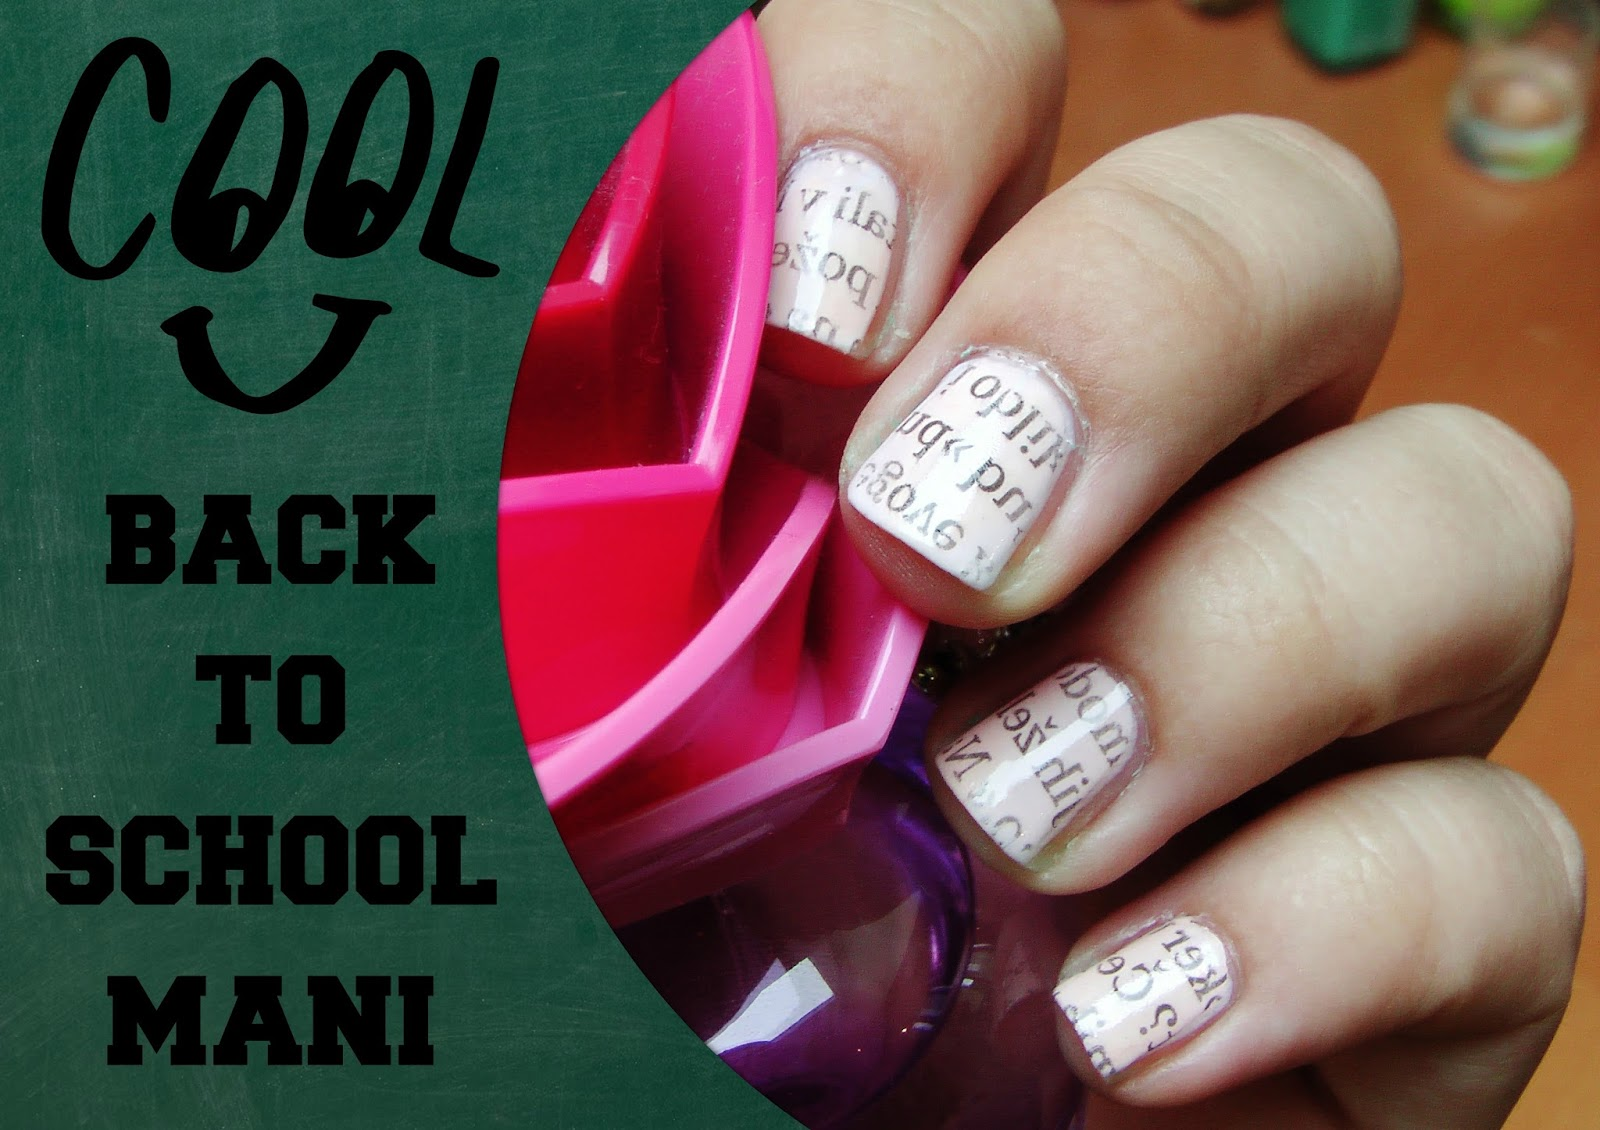 Back to School Mani: Newspaper Nails Tutorial - The Puzzle of ...